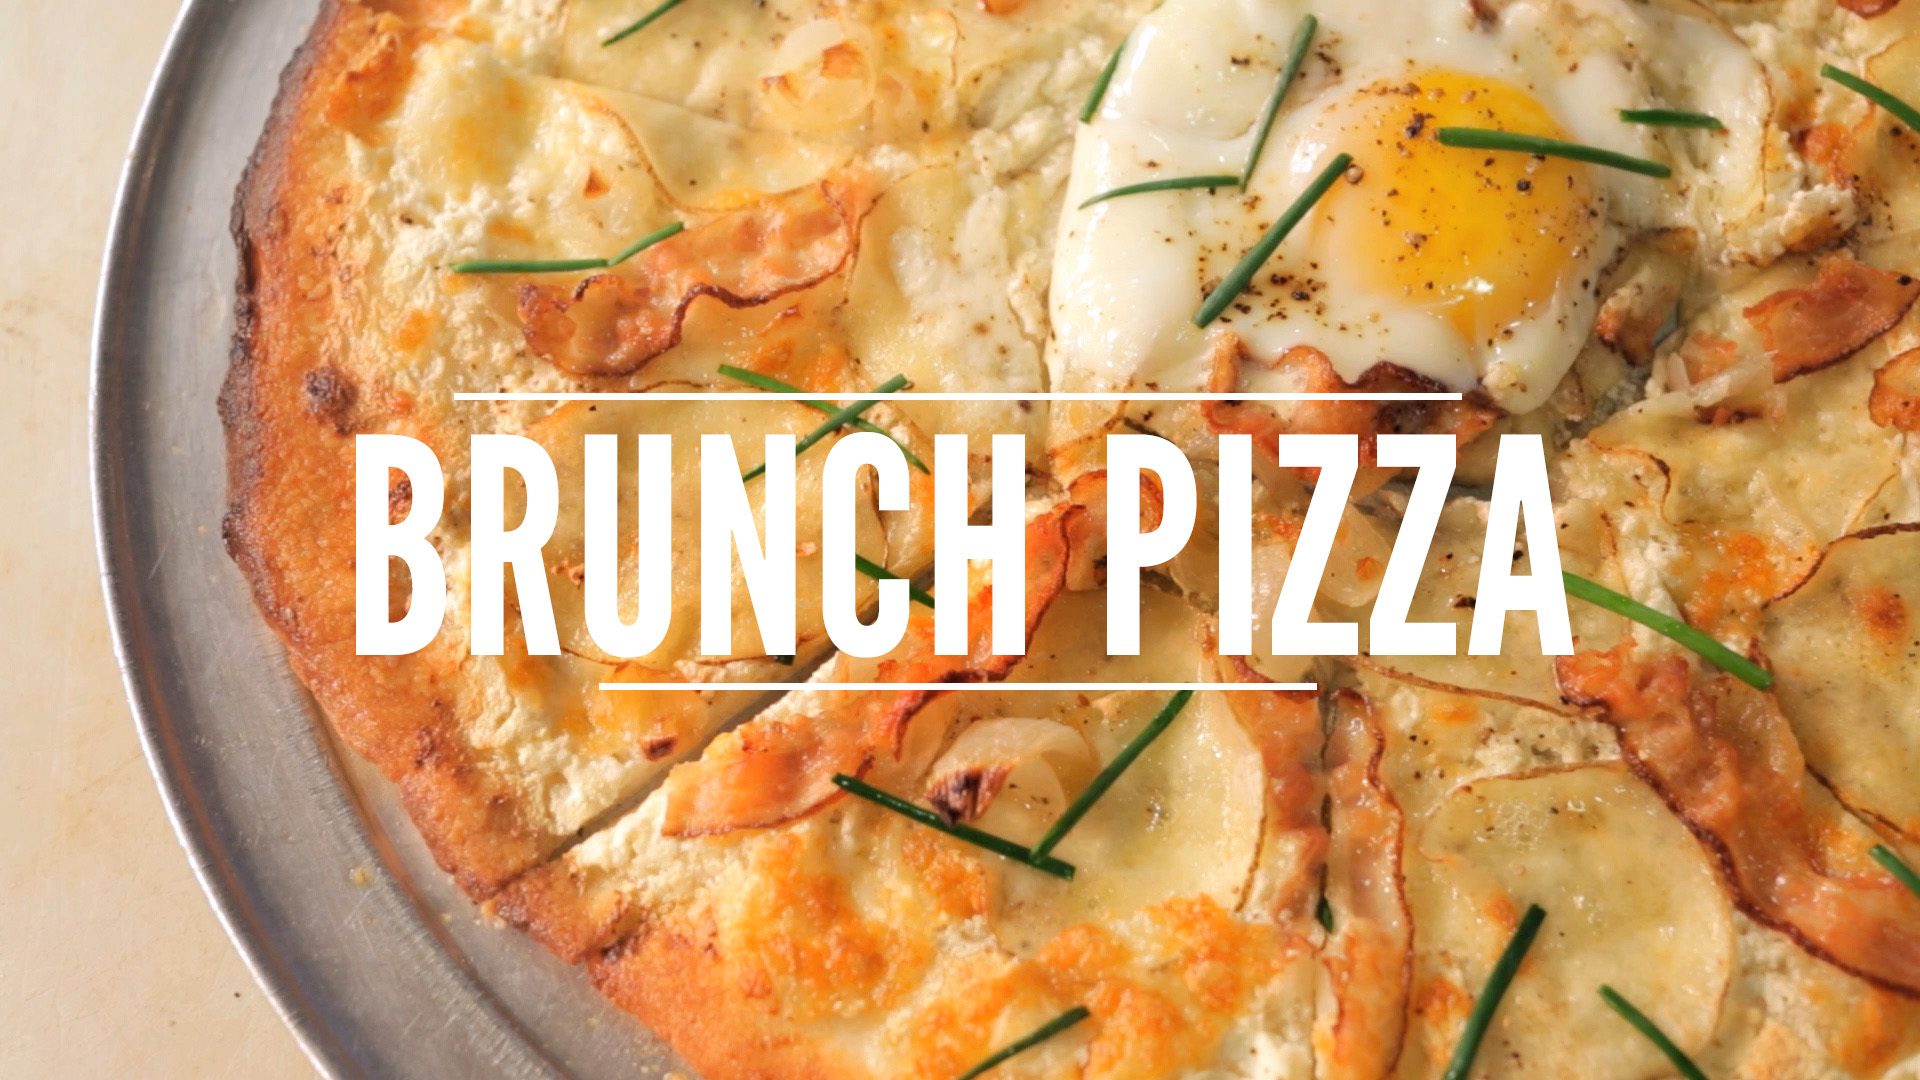 Susan Spicer Puts Brunch on a Pizza | The Dish